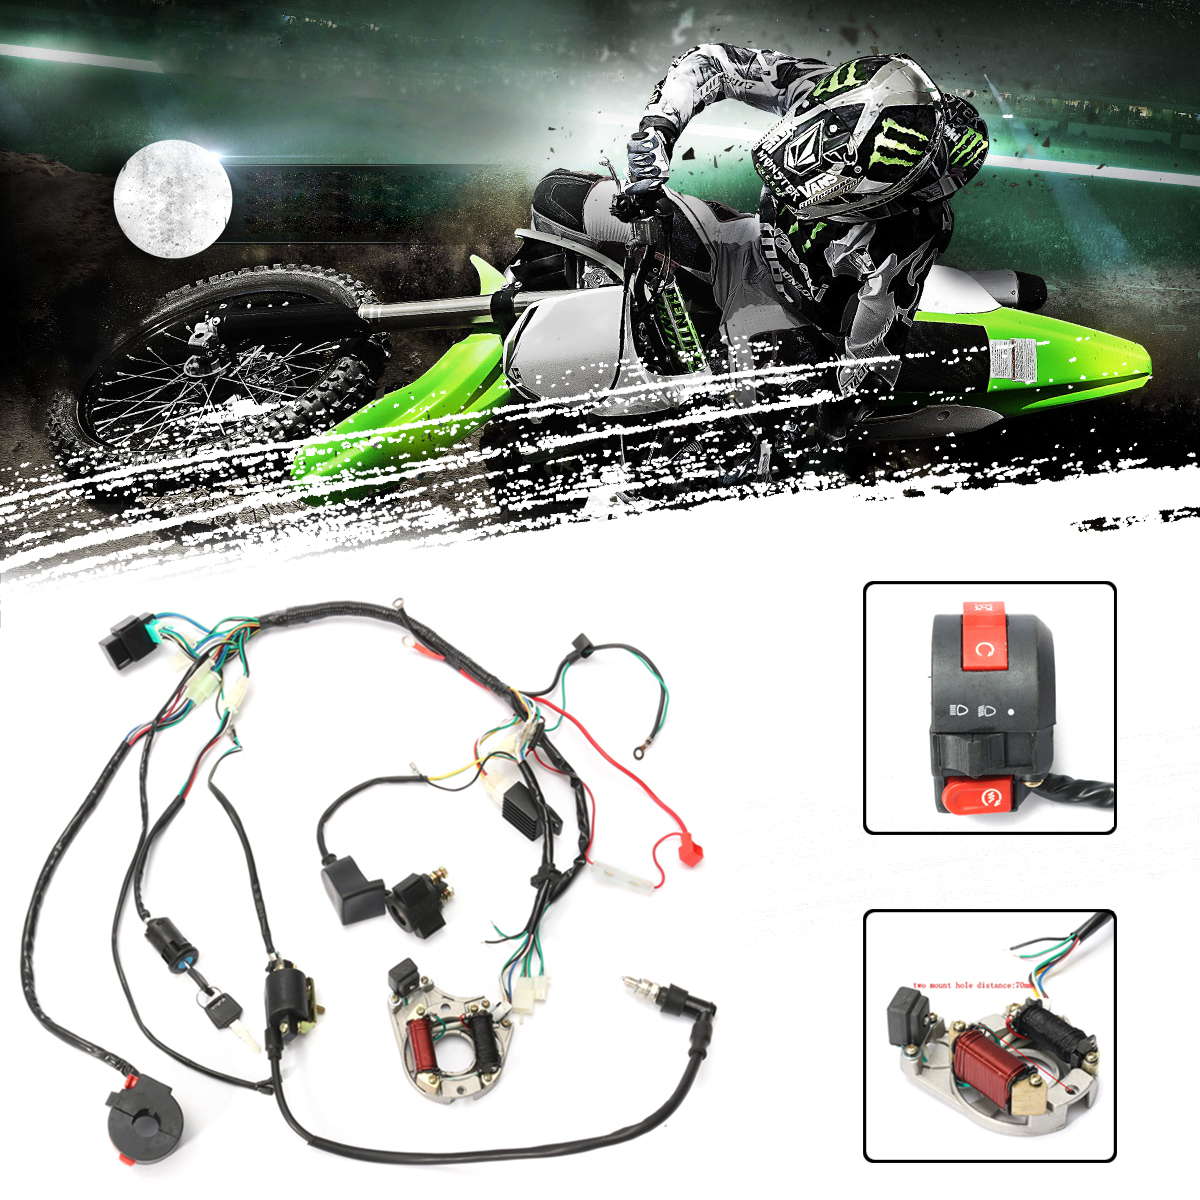 hight resolution of 1 set wire harness wiring cdi assembly for motorcycleaccessorie 50 70 90 110cc 125cc atv quad coolster go kart walmart com